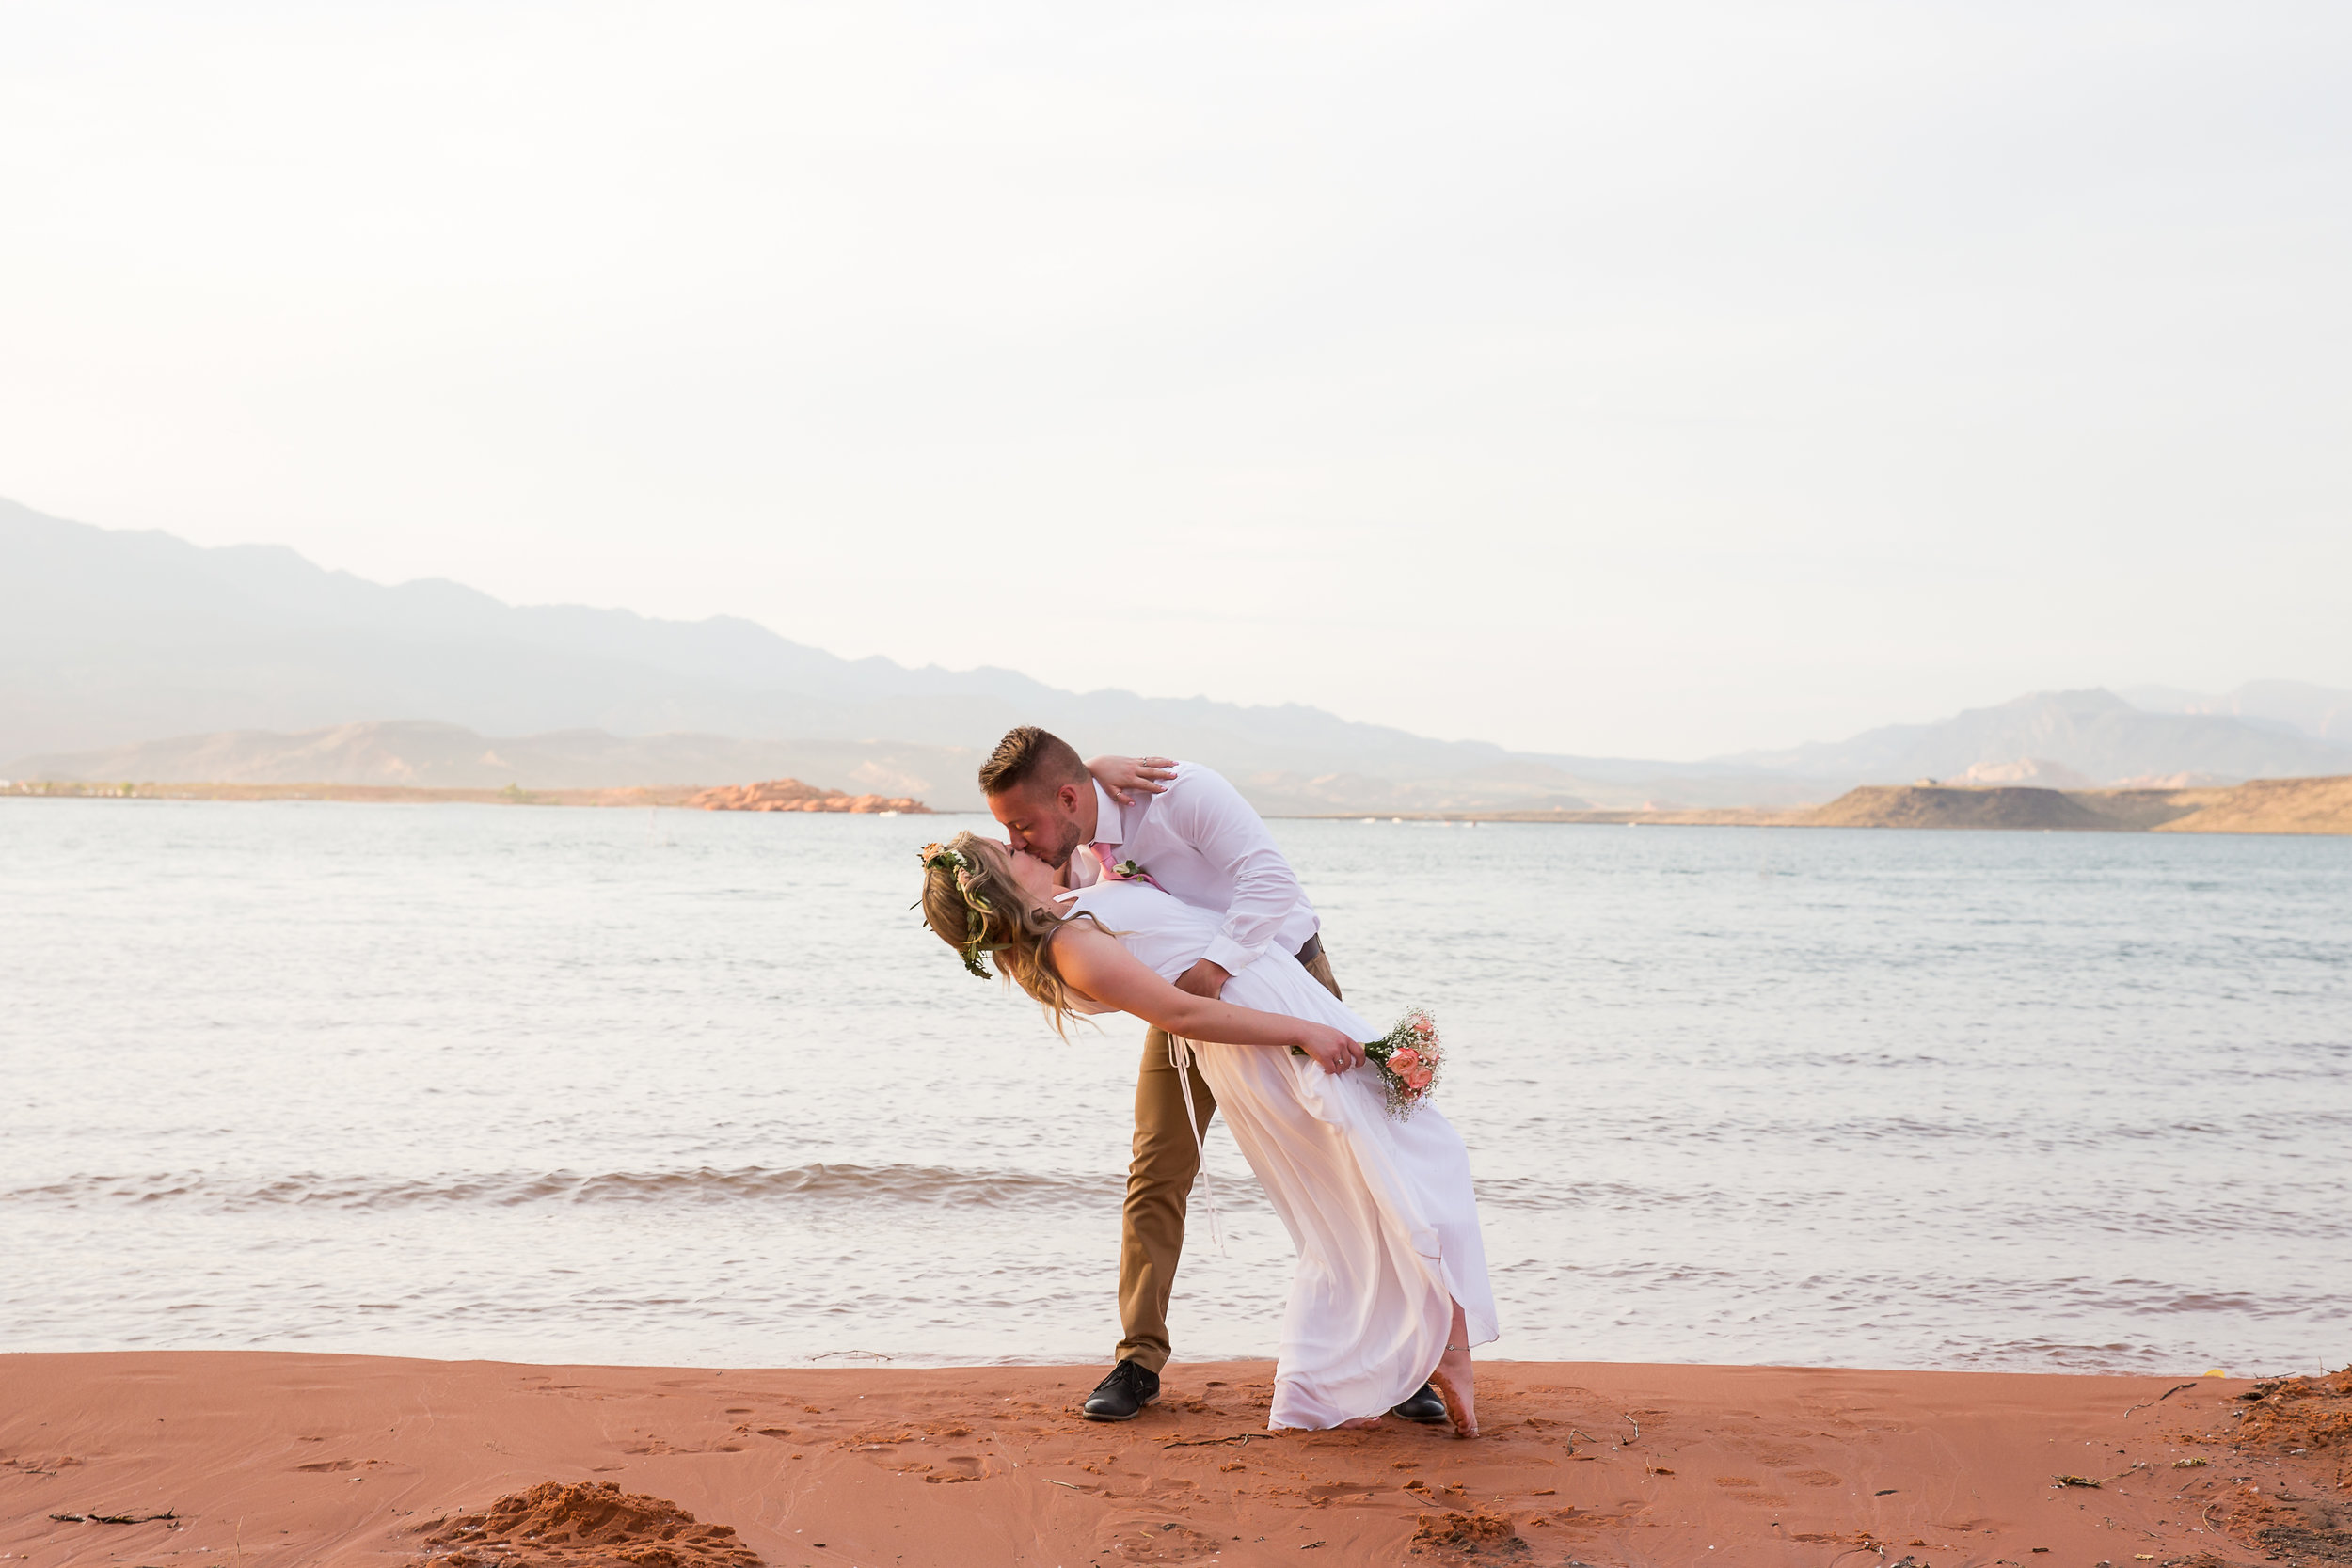 A+C Elopement Utah Wedding Photographer -129.jpg